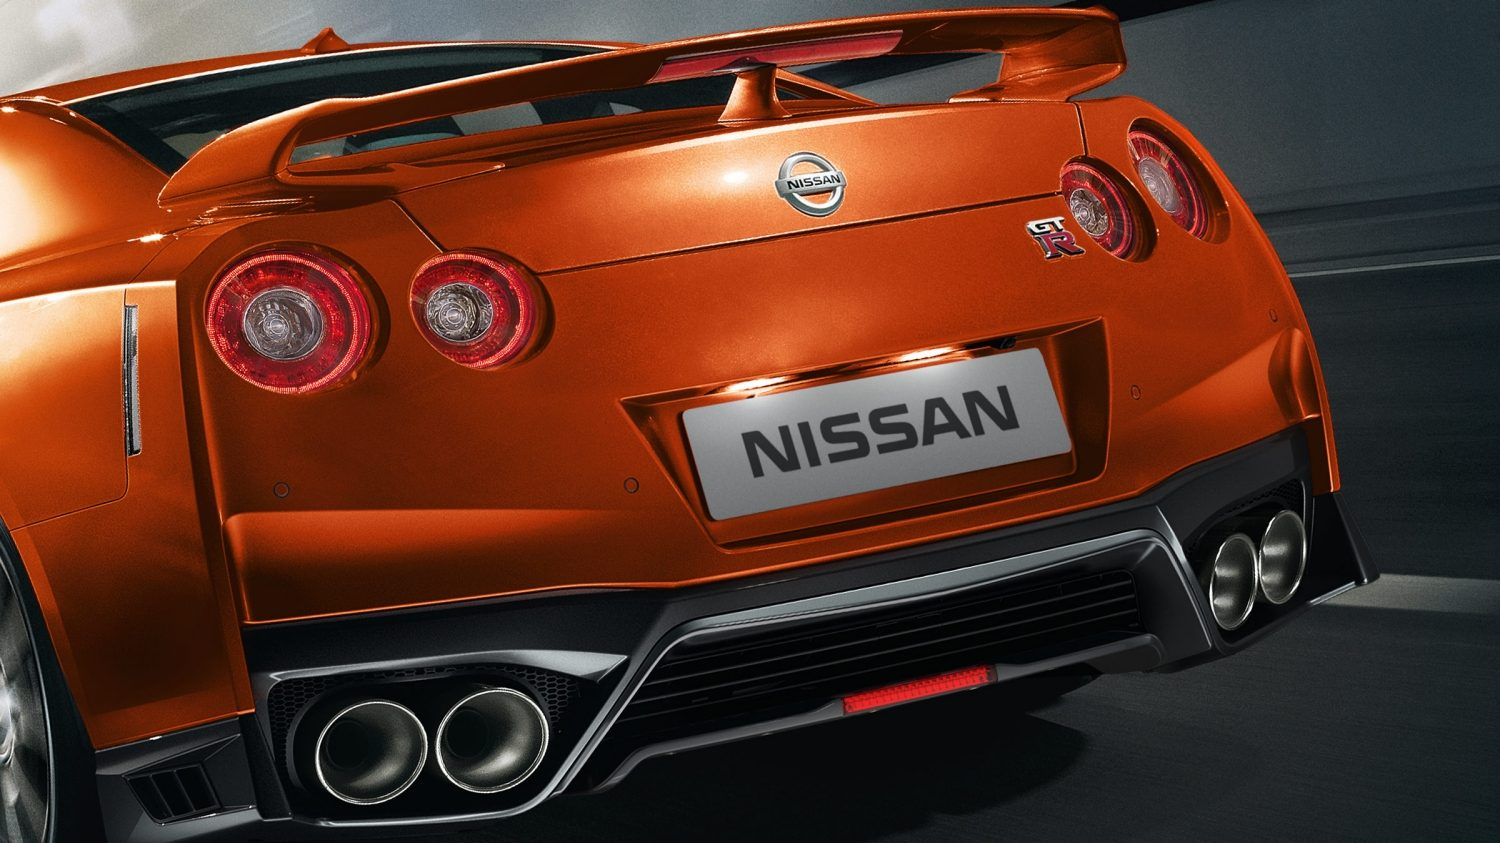 Nissan New GT-R rear fascia